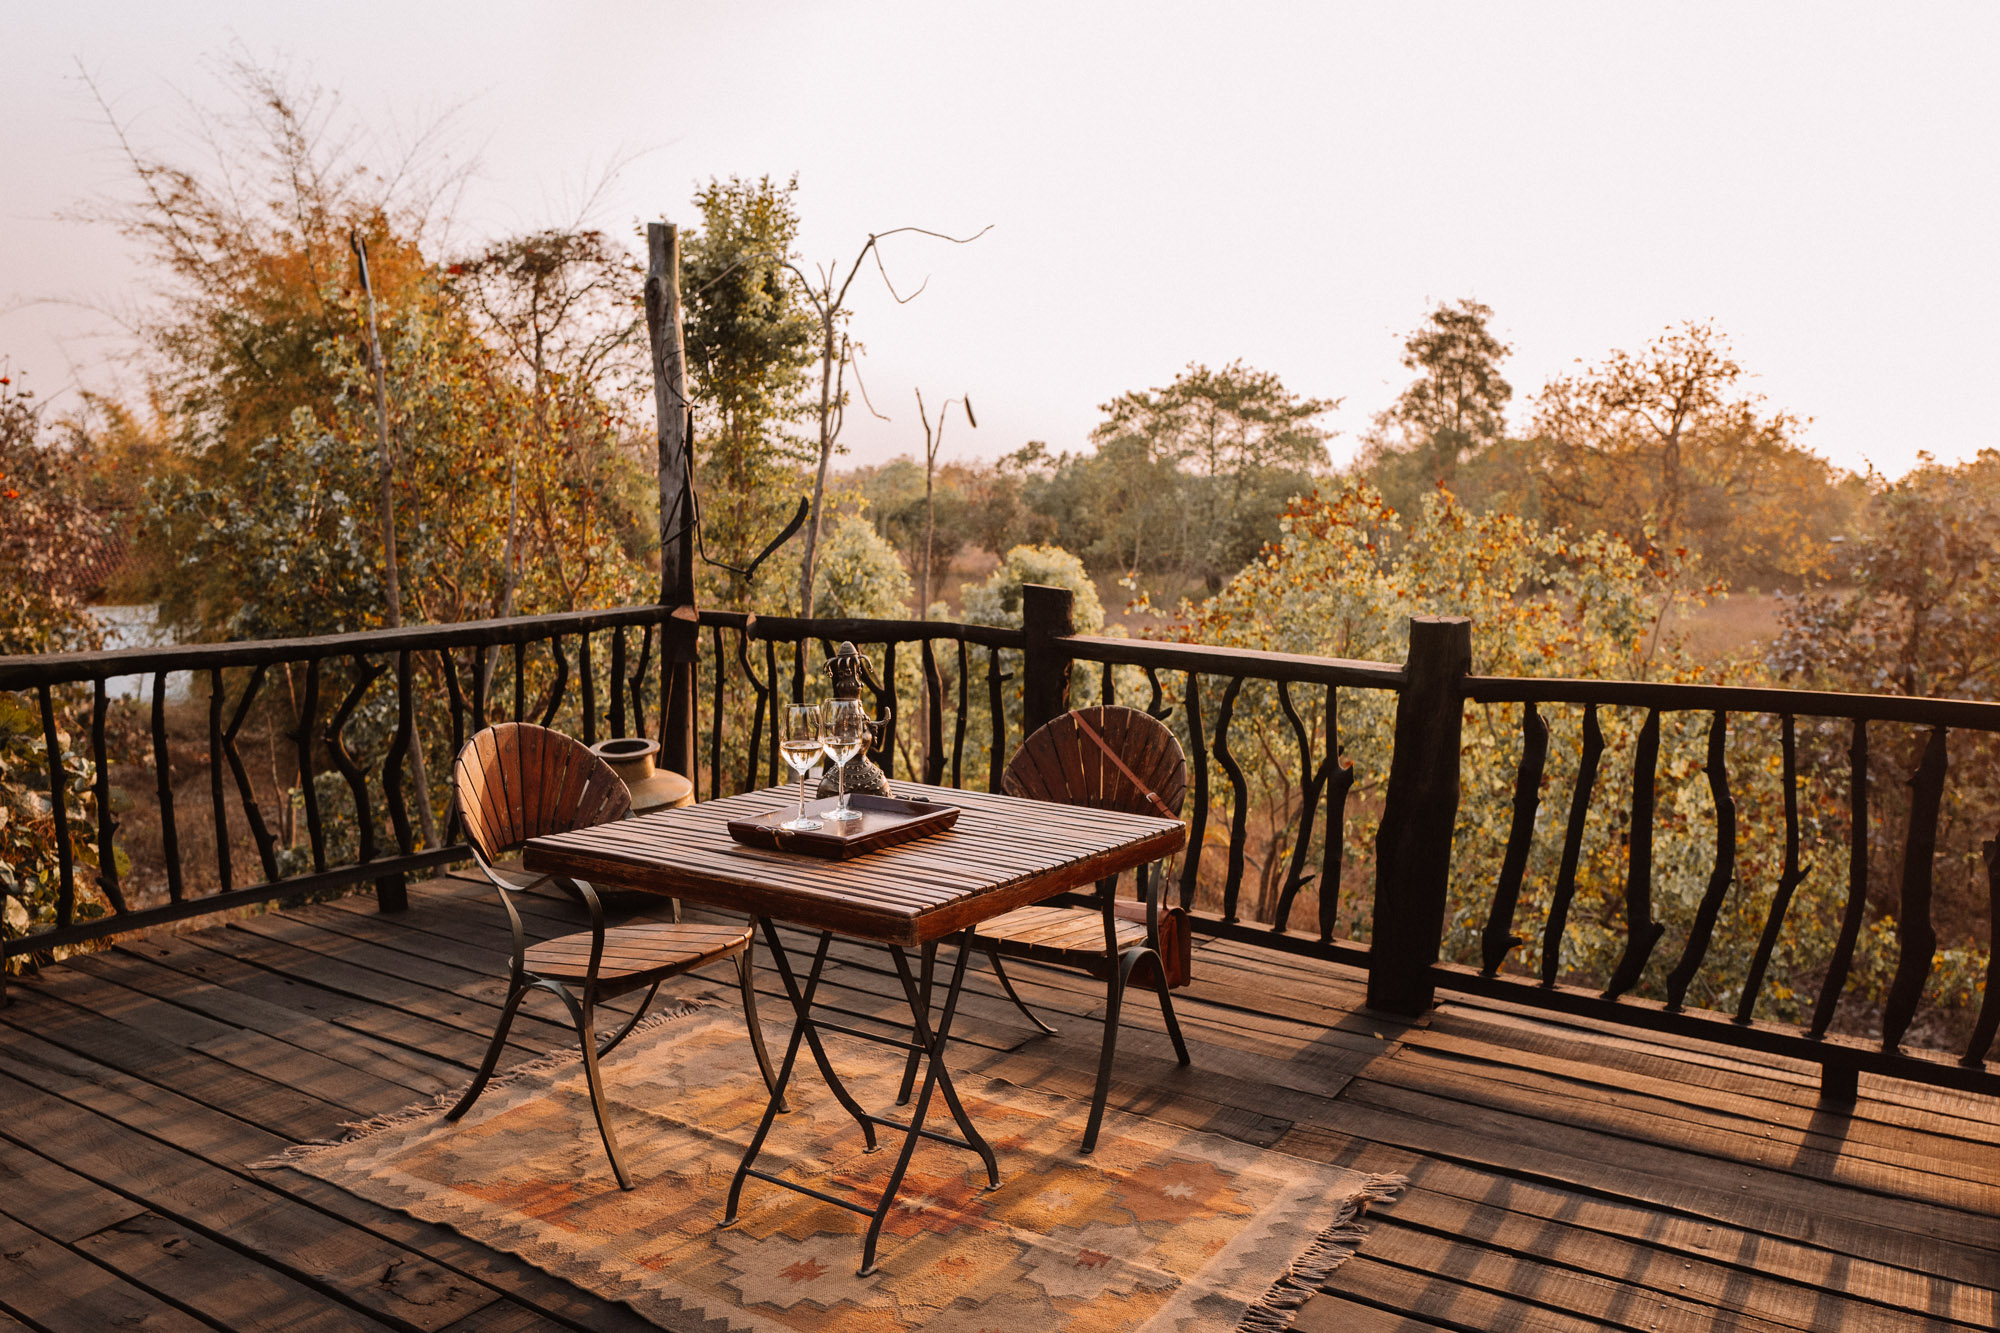 Dinner at Samode Safari Lodge in Ranthambore National Park, India via Find Us Lost